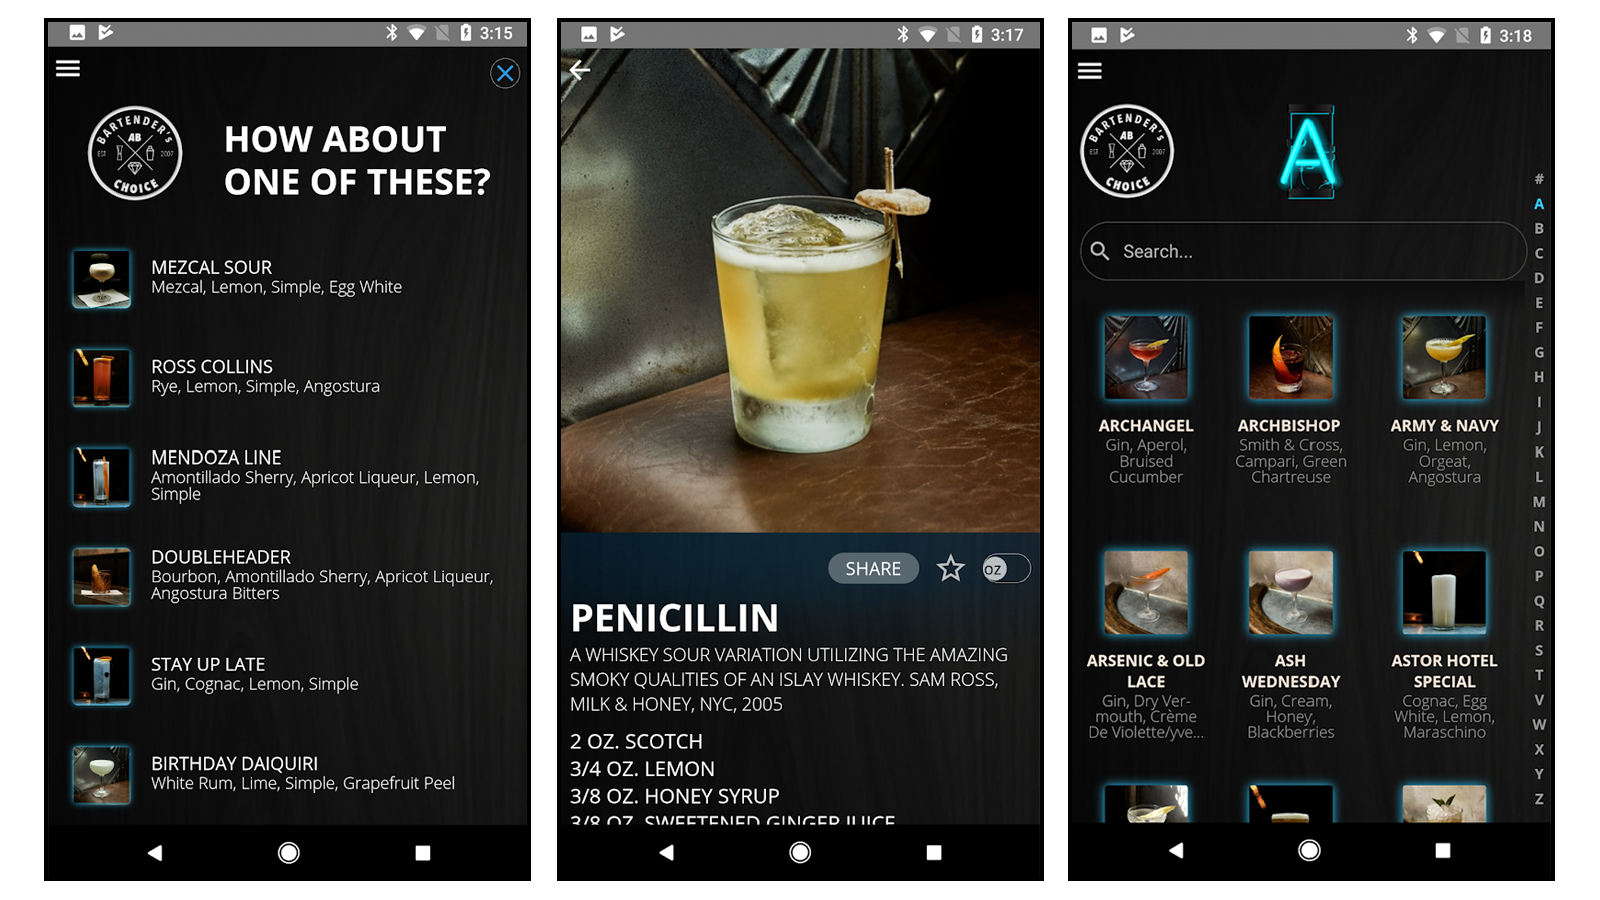 Bartender's Choice app with drink suggestions and recipes